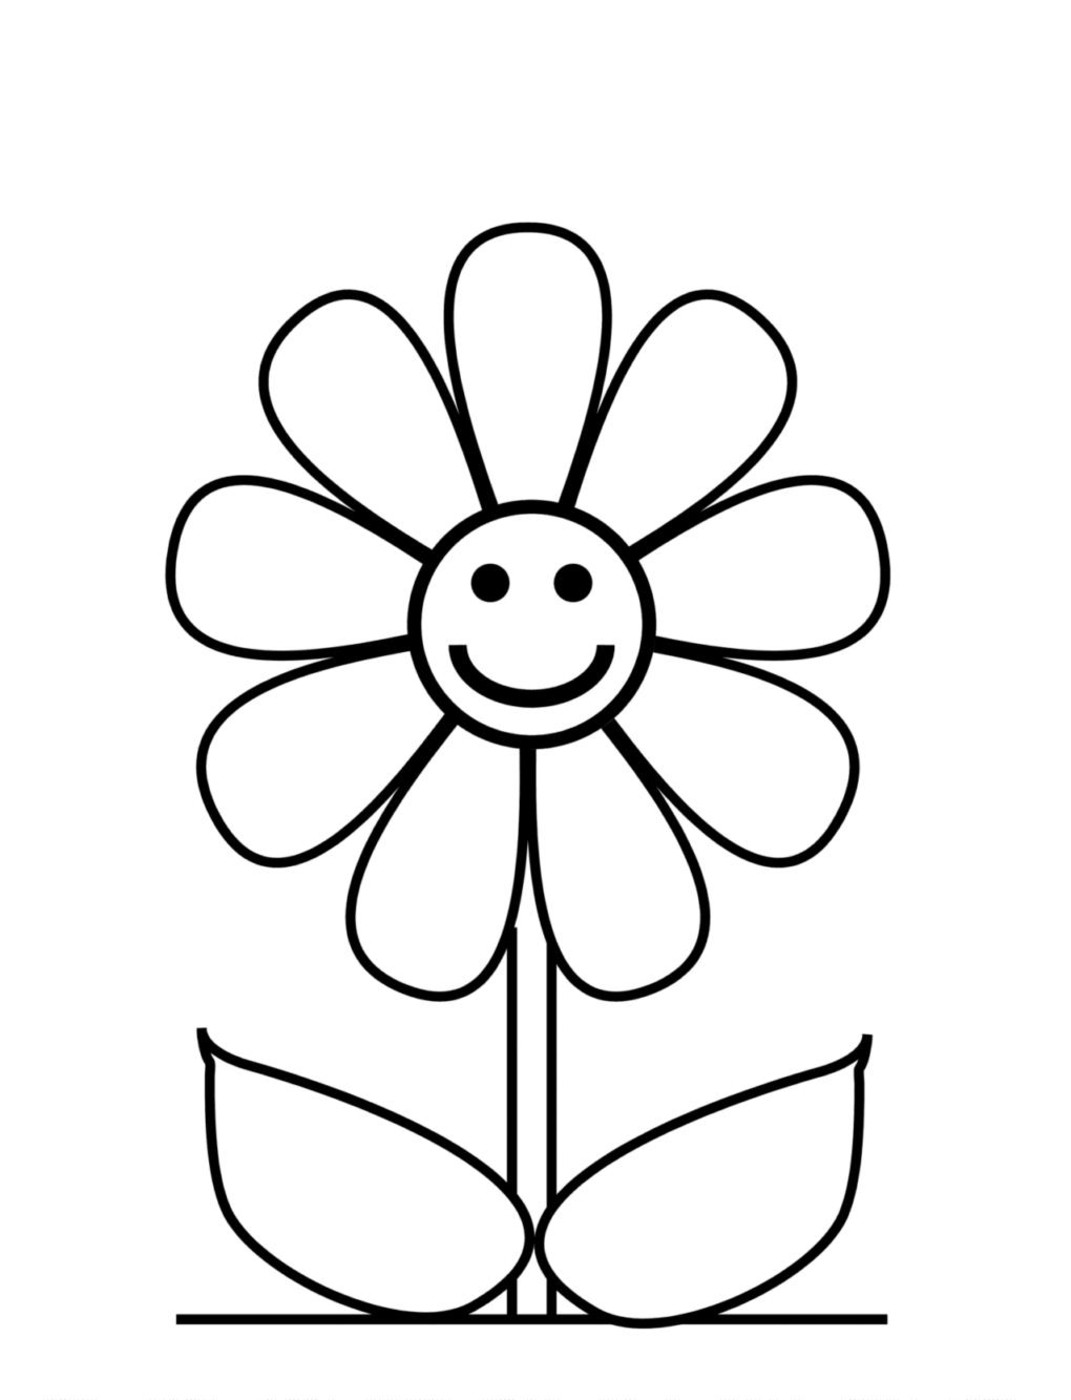 free printable coloring pages of flowers spring flowers drawing at getdrawings free download of printable free flowers pages coloring